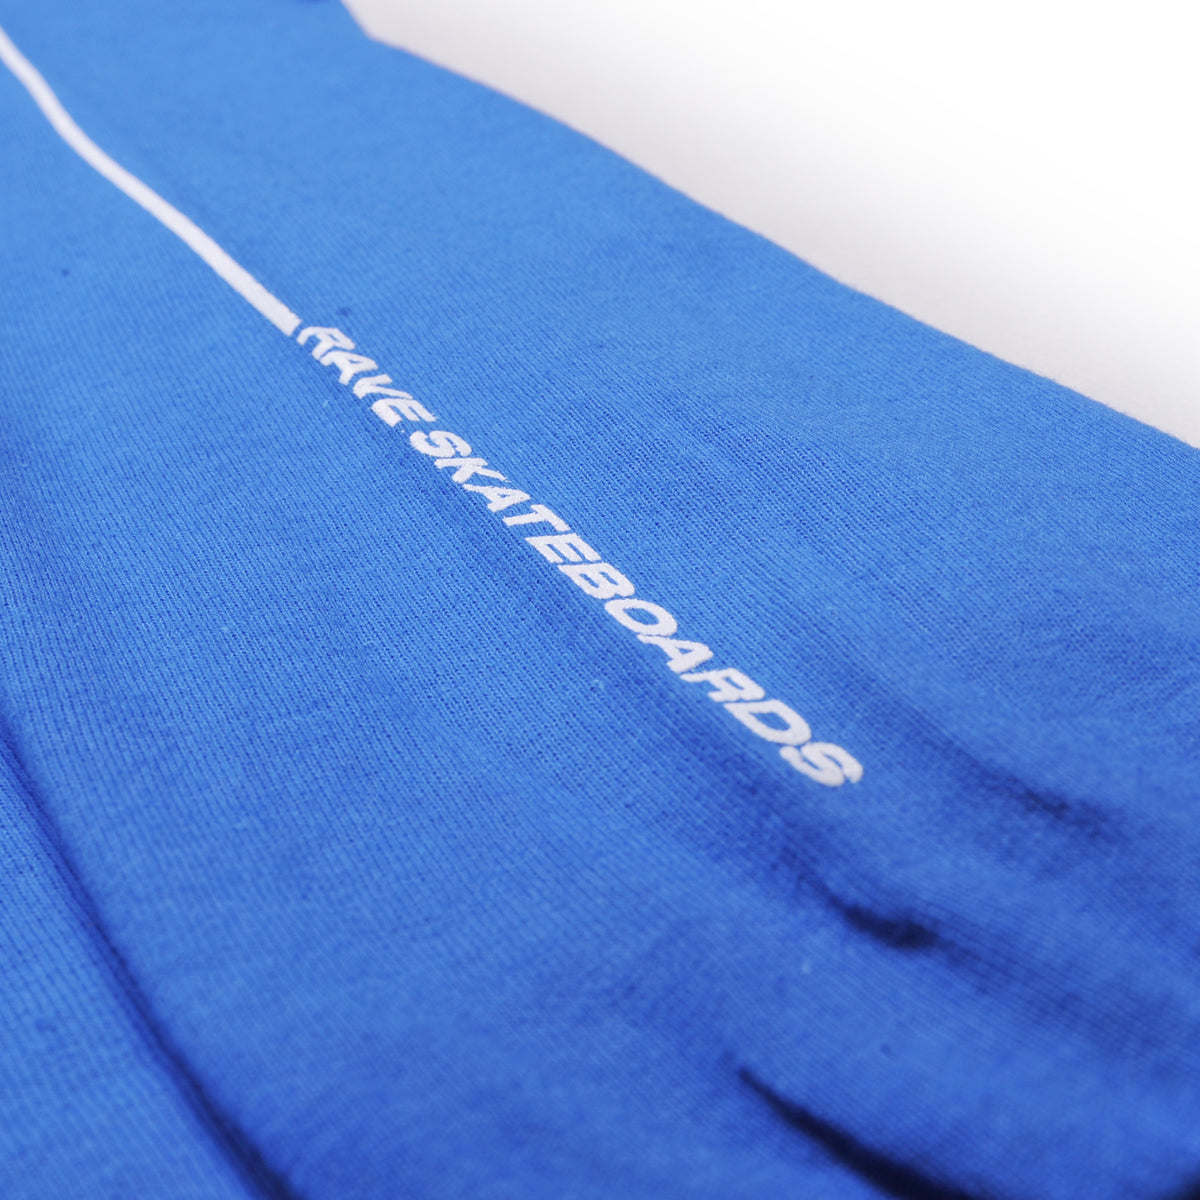 CAVENDOLI royal blue LS tee - RAVE skateboards